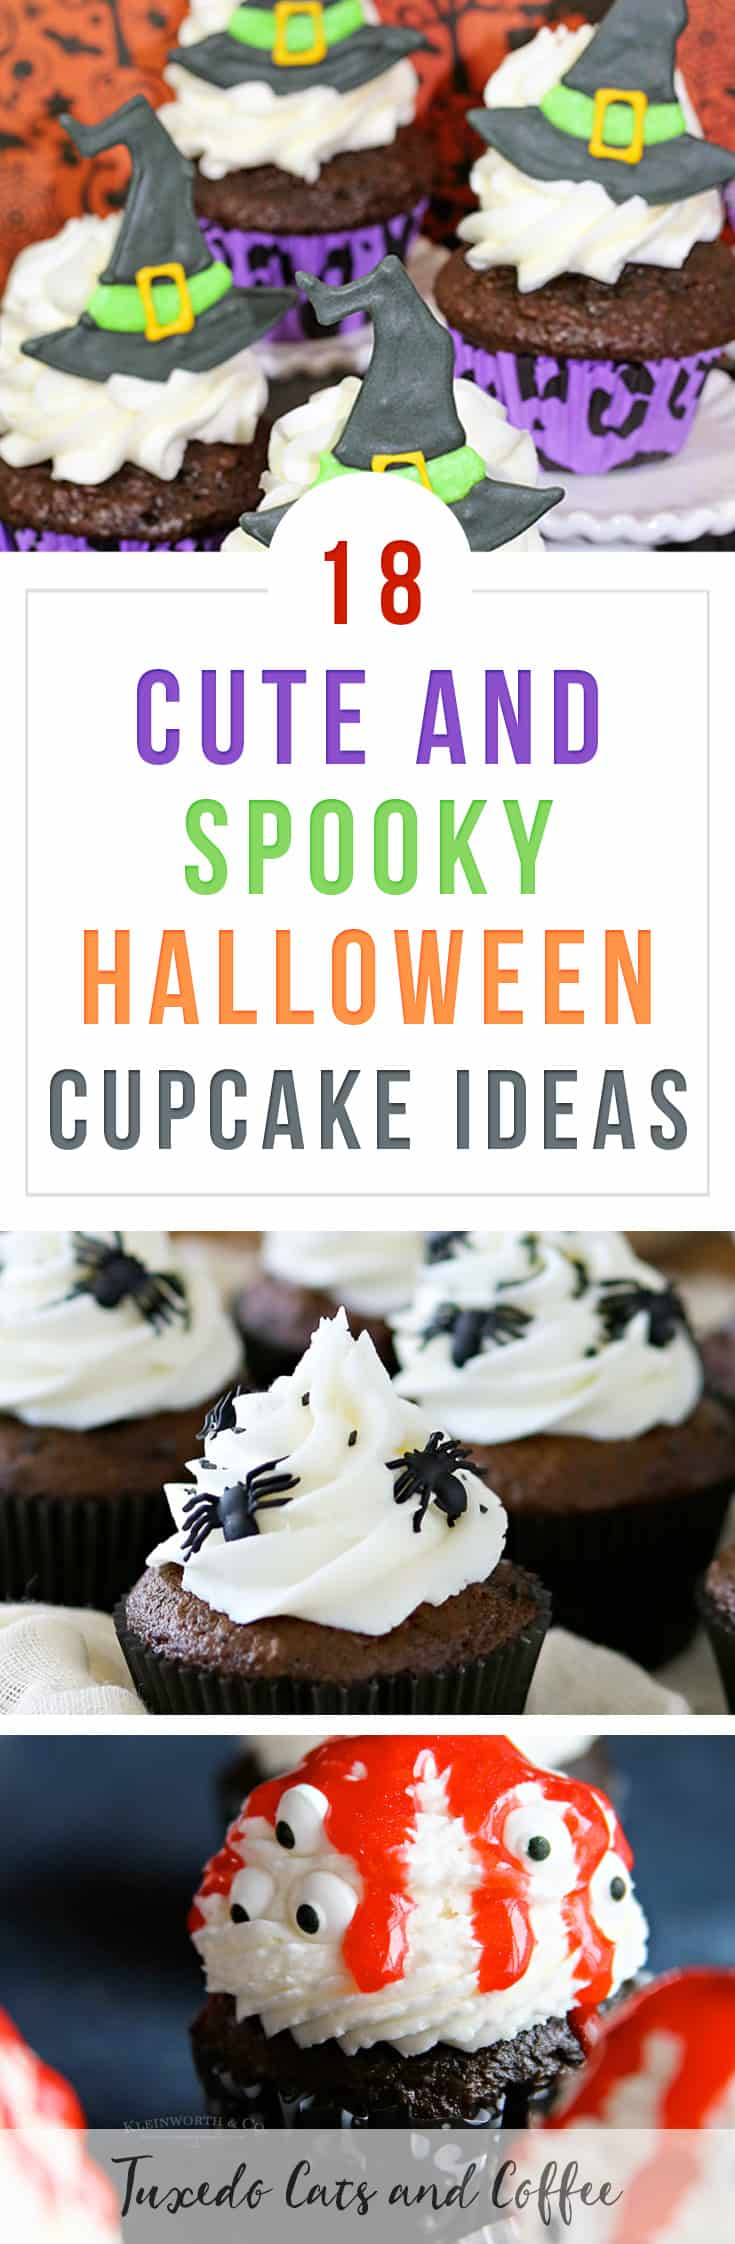 Want a fun dessert recipe for your Halloween party?  Here are 18 cute and spooky Halloween cupcake ideas that are delicious and scary!